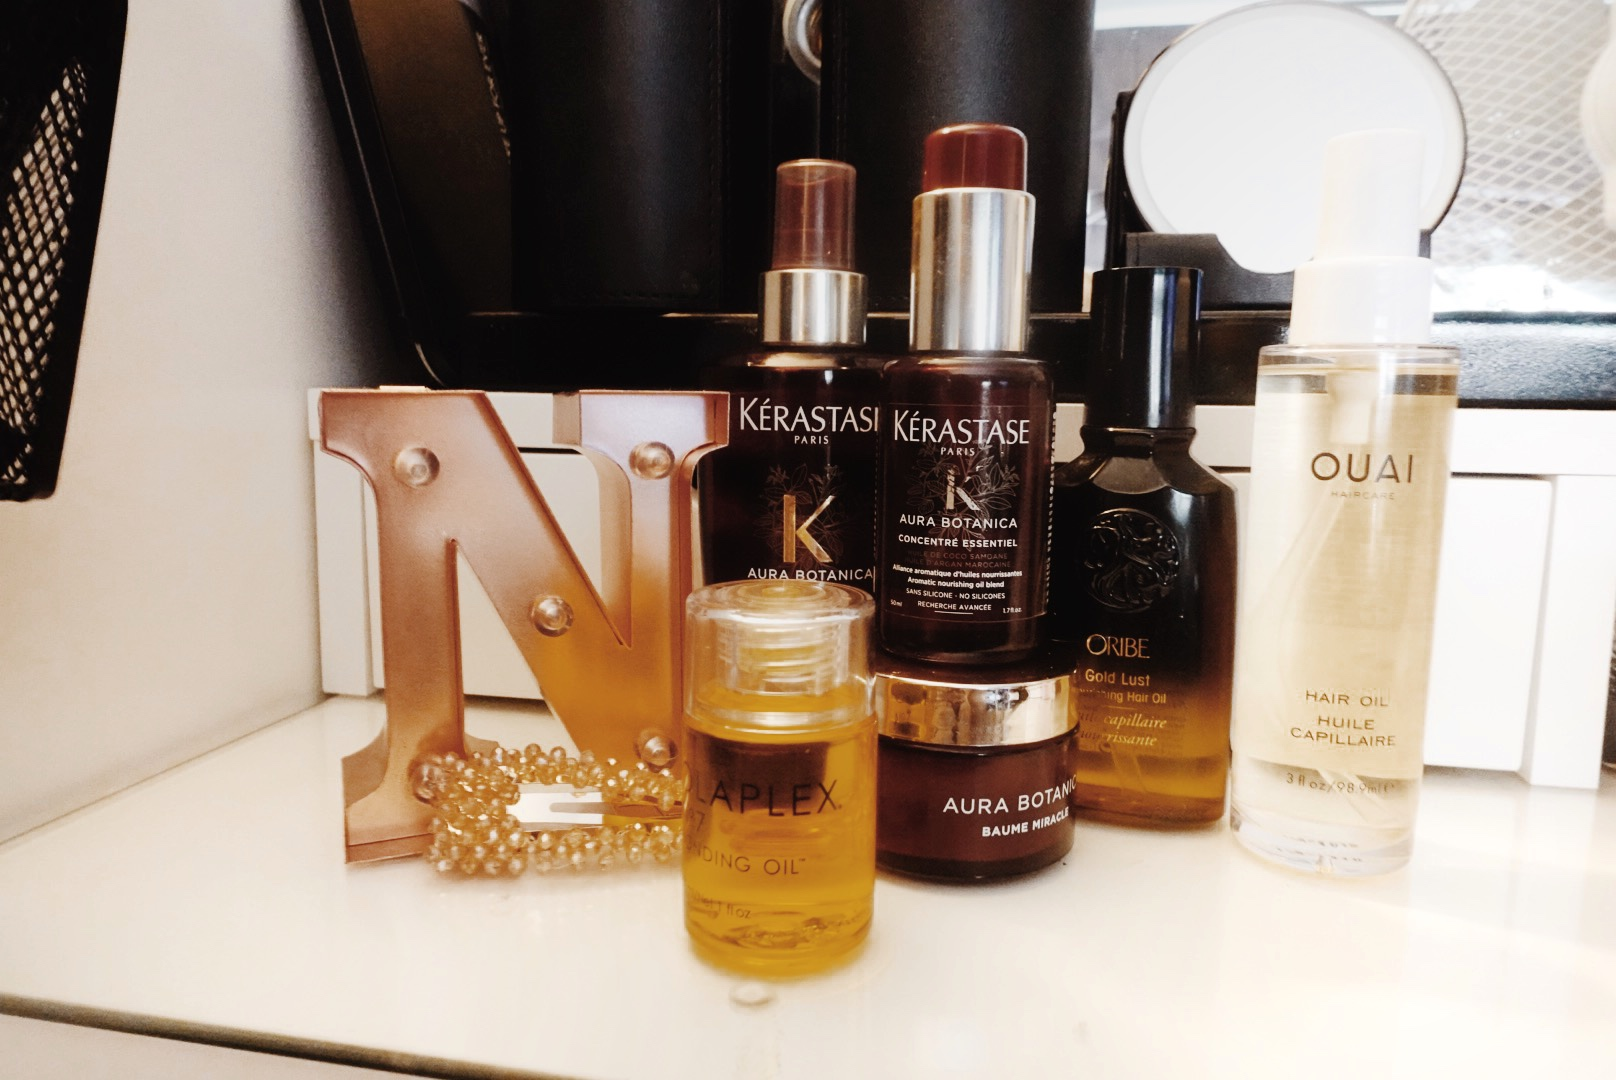 Bottles of various hair oils placed next to each other on the glass counter of a white vanity table. There's also a rose gold coloured letter N used as decor along with the bottles of hair oil mentioned in the blog post.